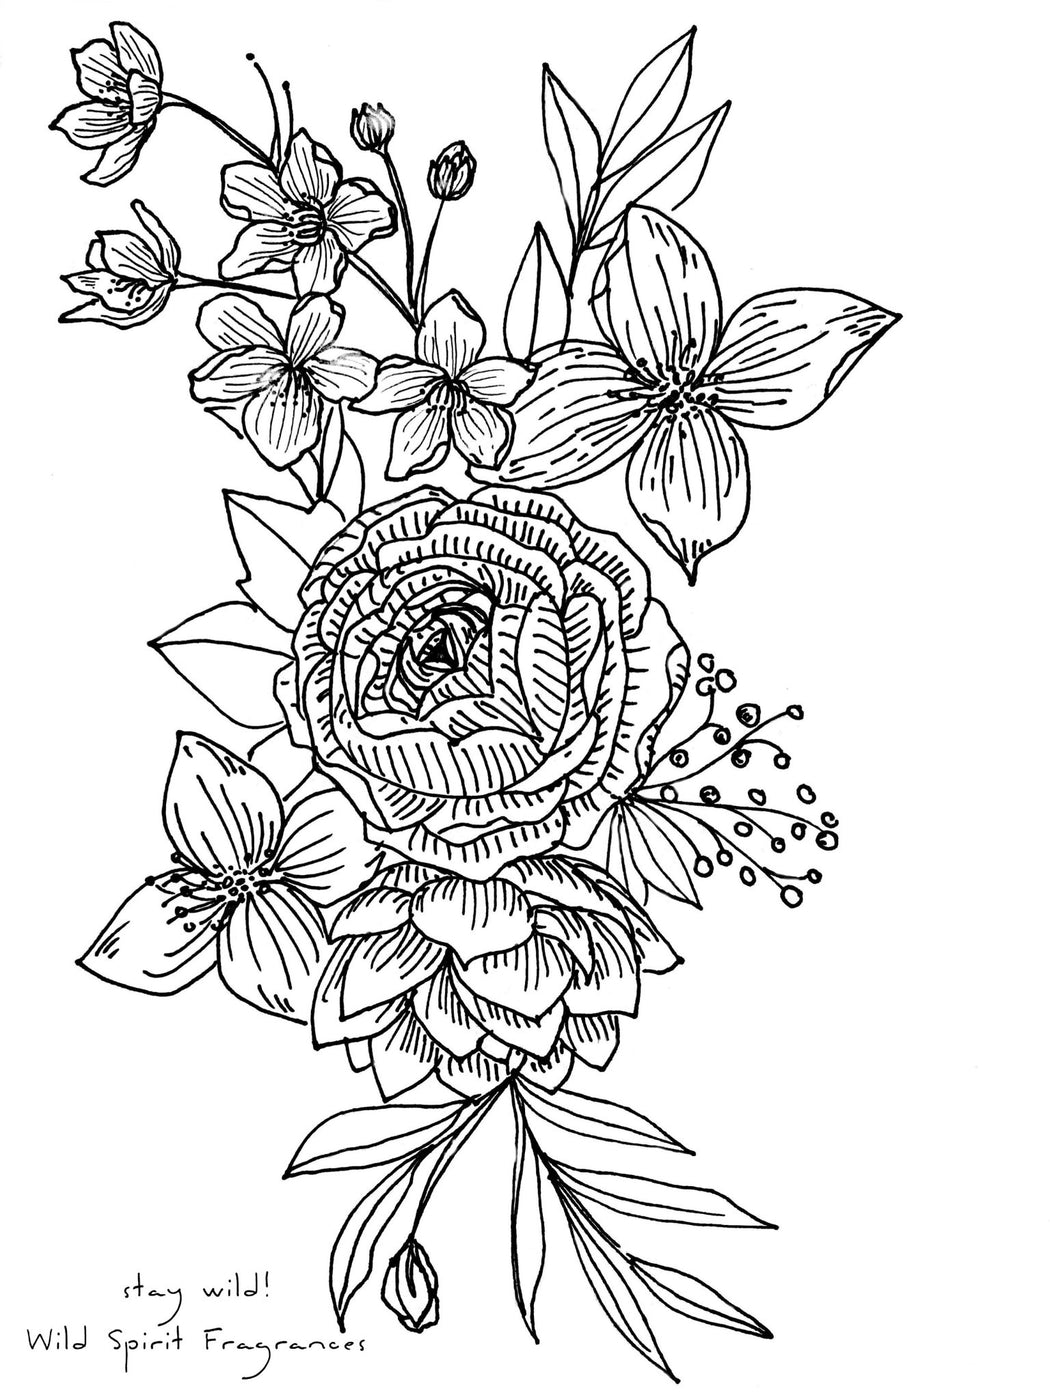 Coloring Page, Free Printable Instant Download, Boho Bouquet - Wild Spirit